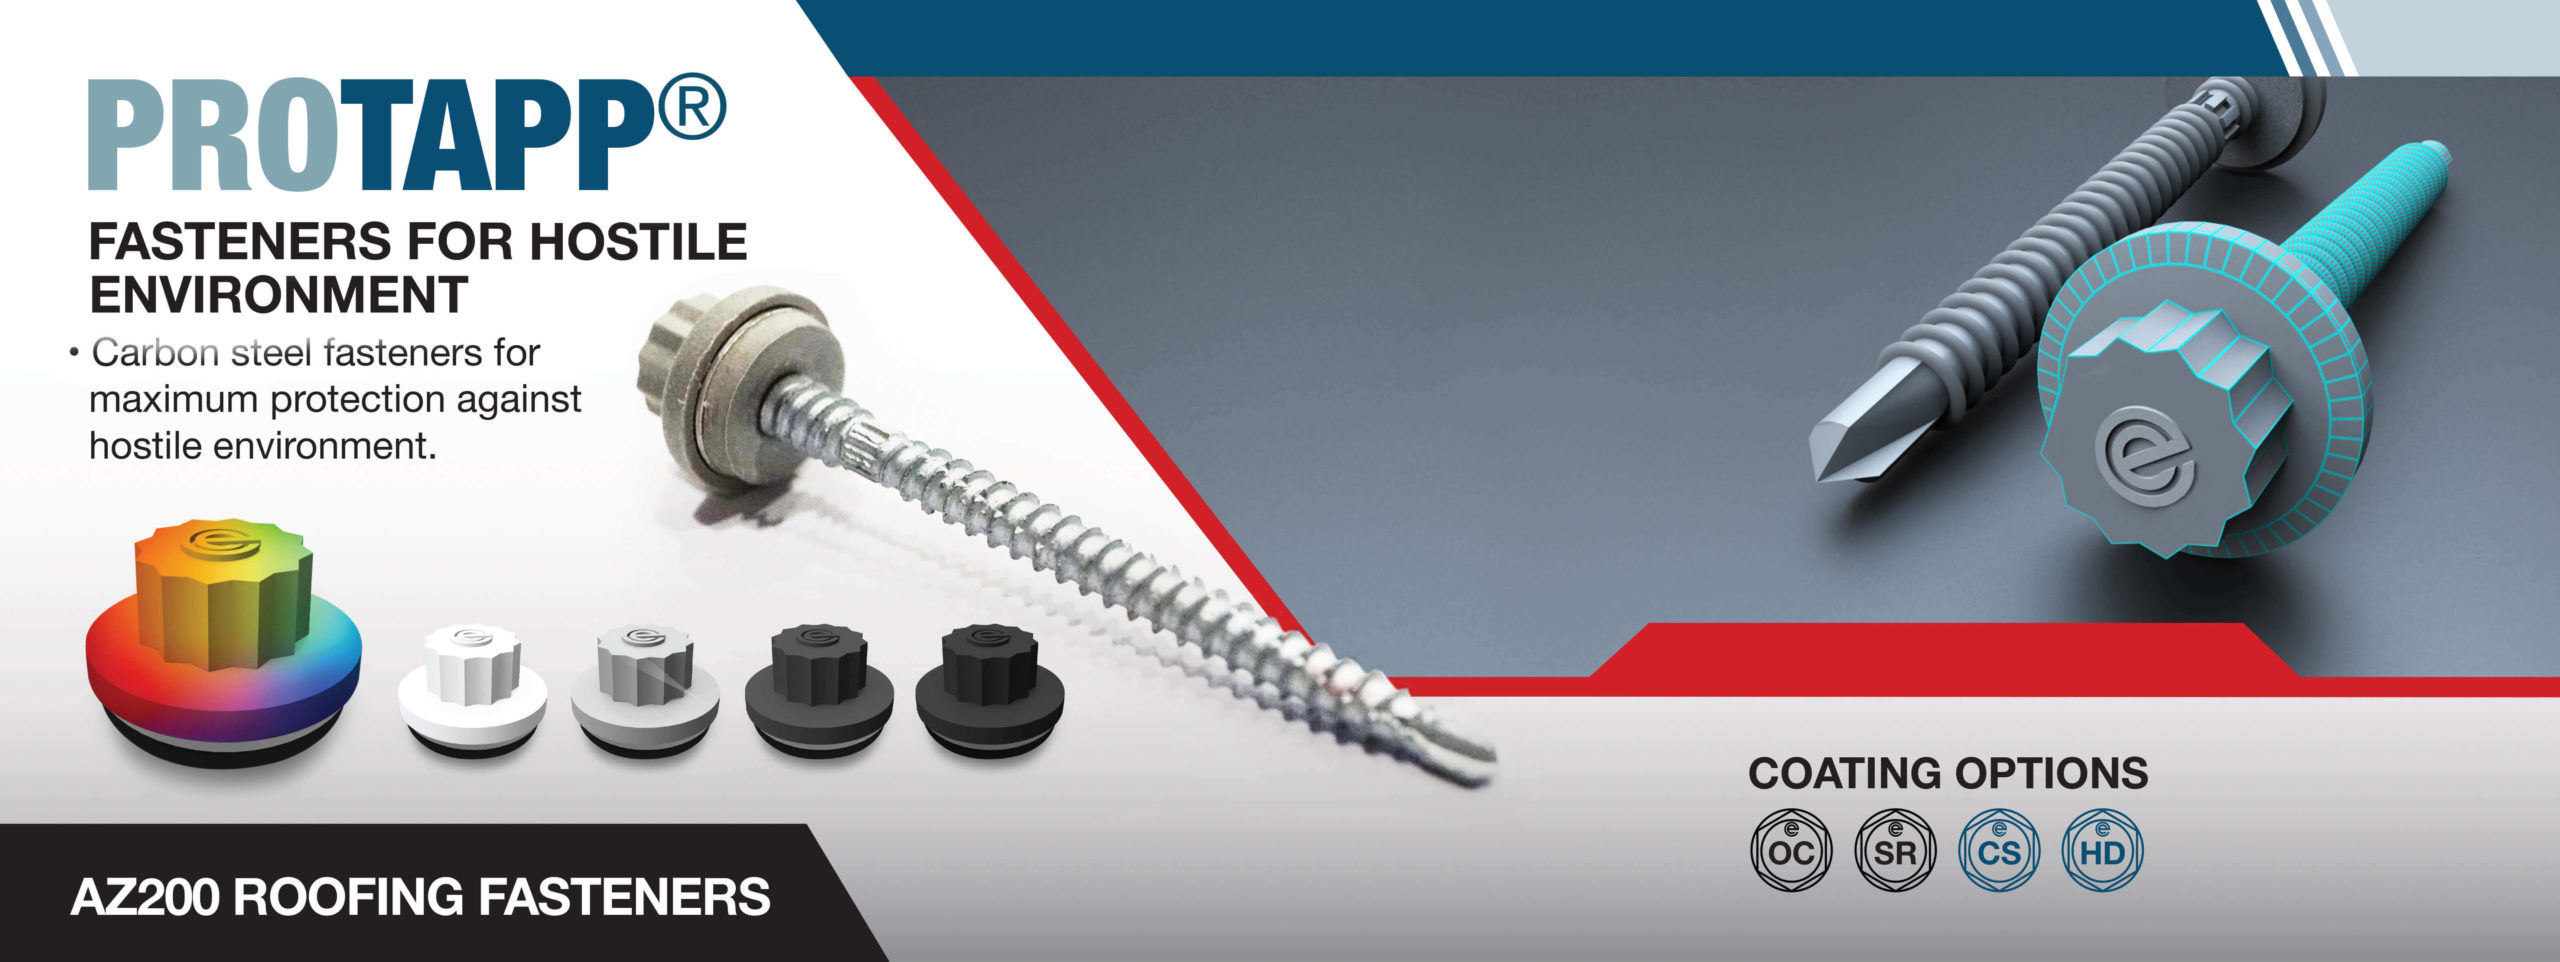 Protapp Roofing and Cladding Fasteners